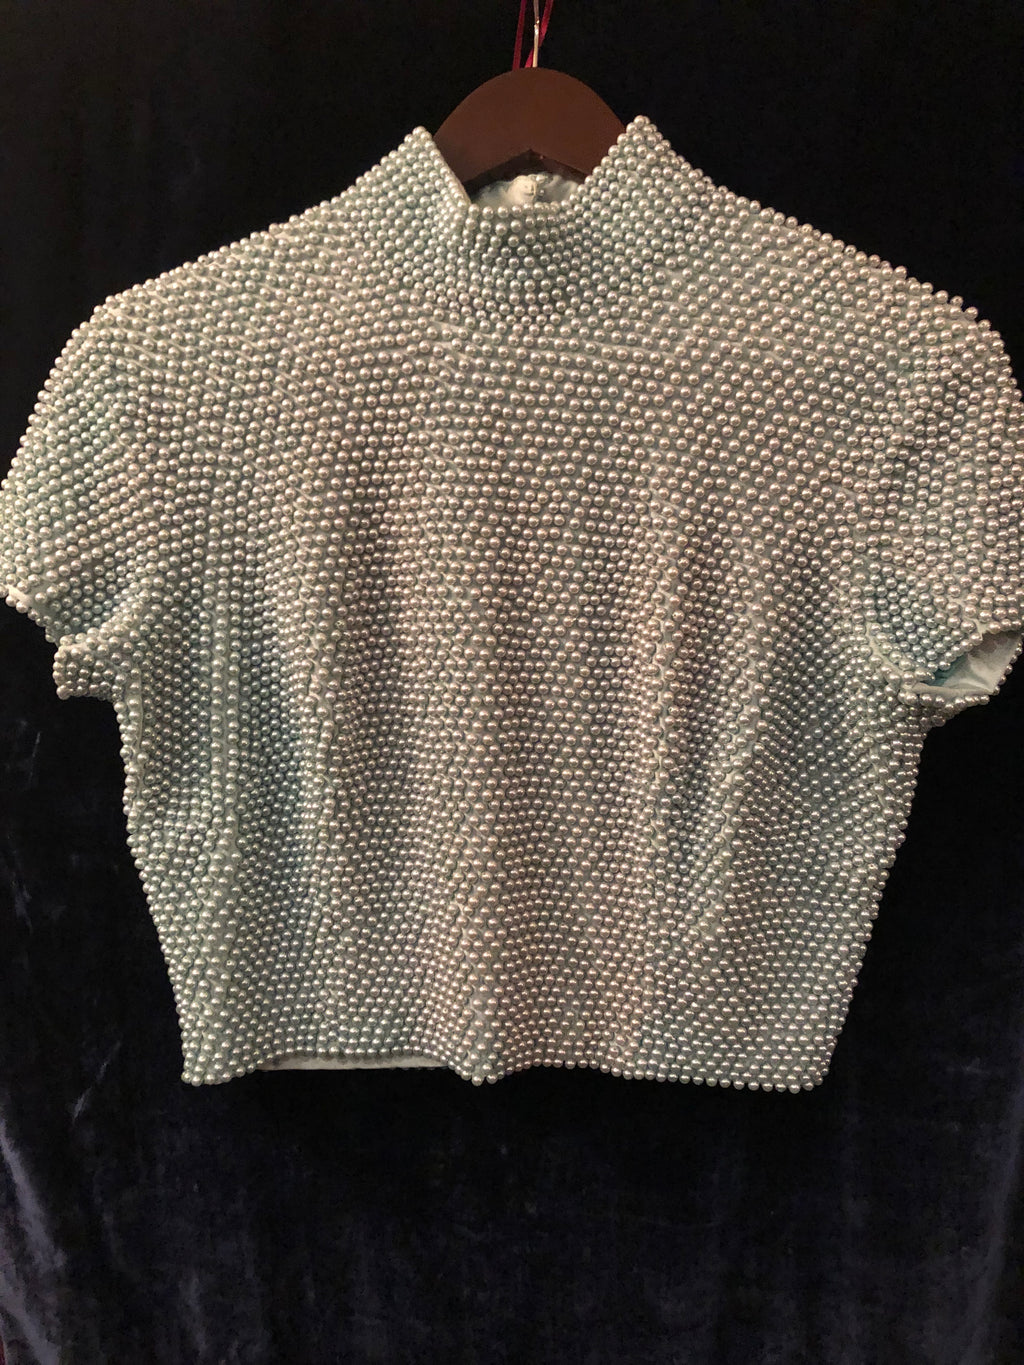 Women's Tops: Vintage 1990s Ice Blue Pearl Beaded Mock Turtleneck Top